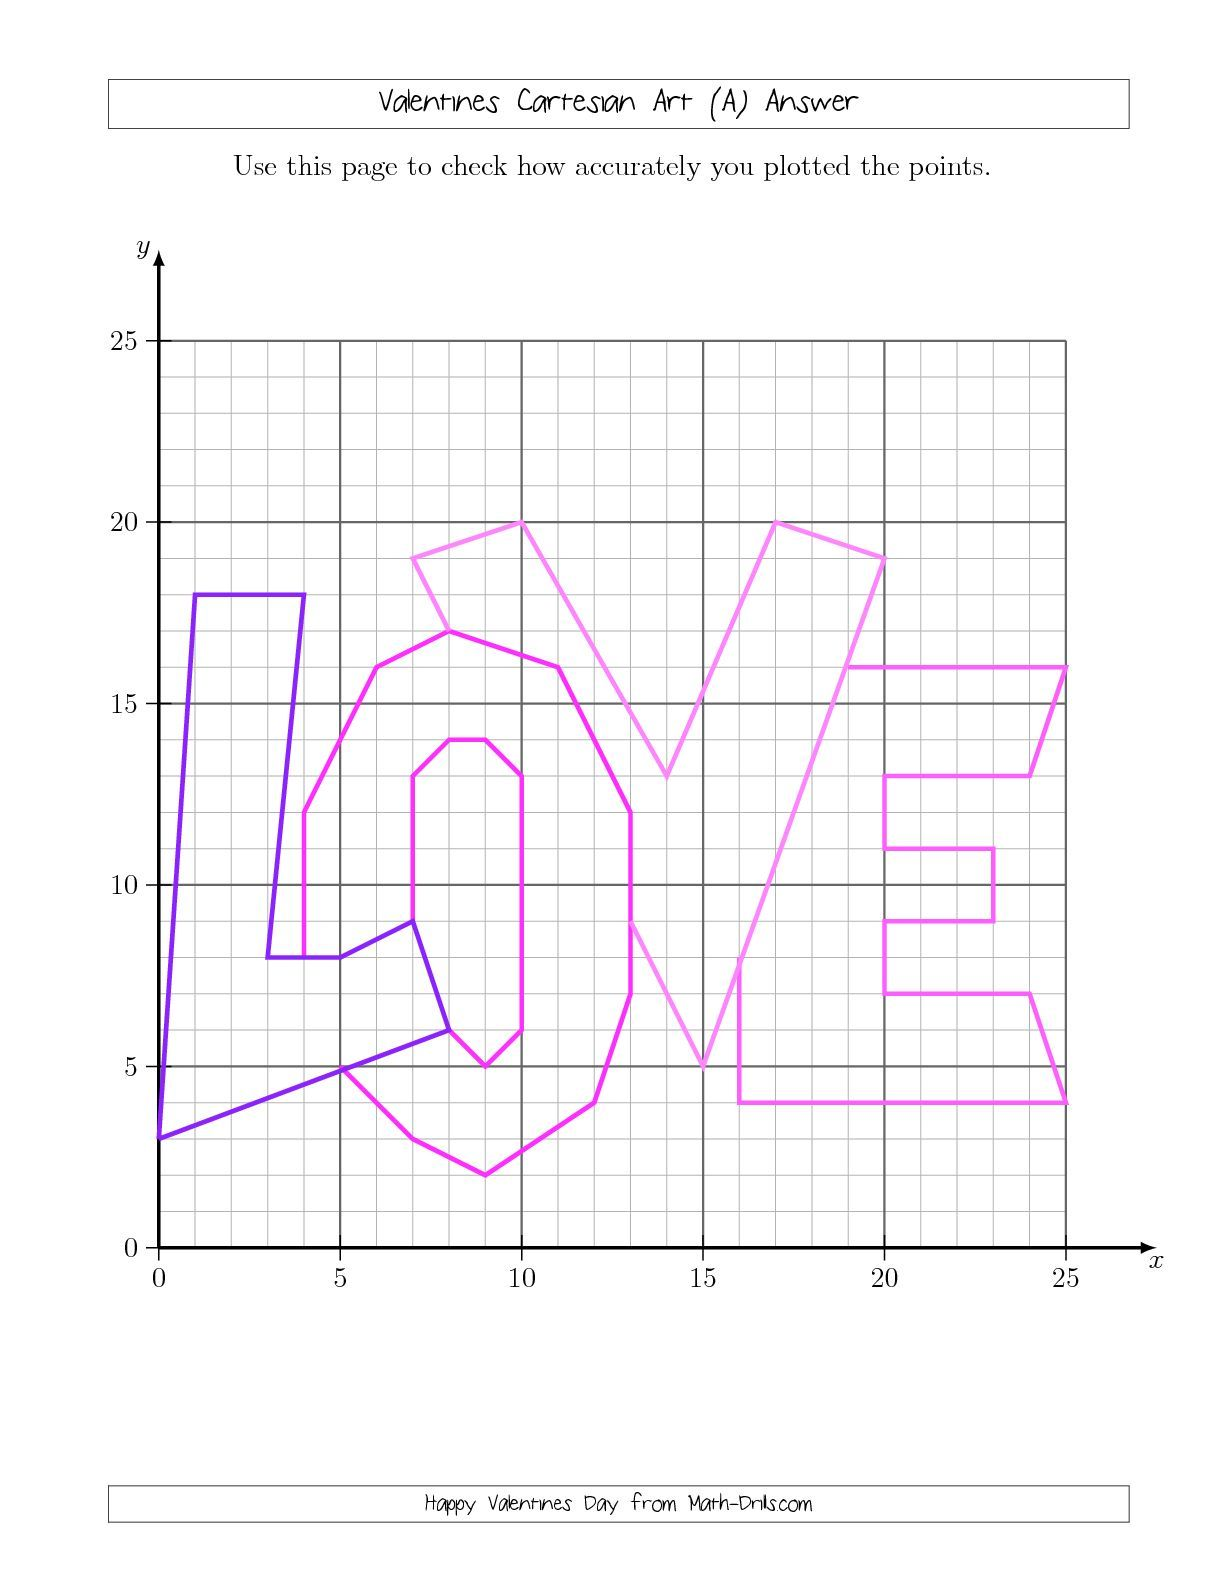 The Valentines Cartesian Art Love Math Worksheet From The